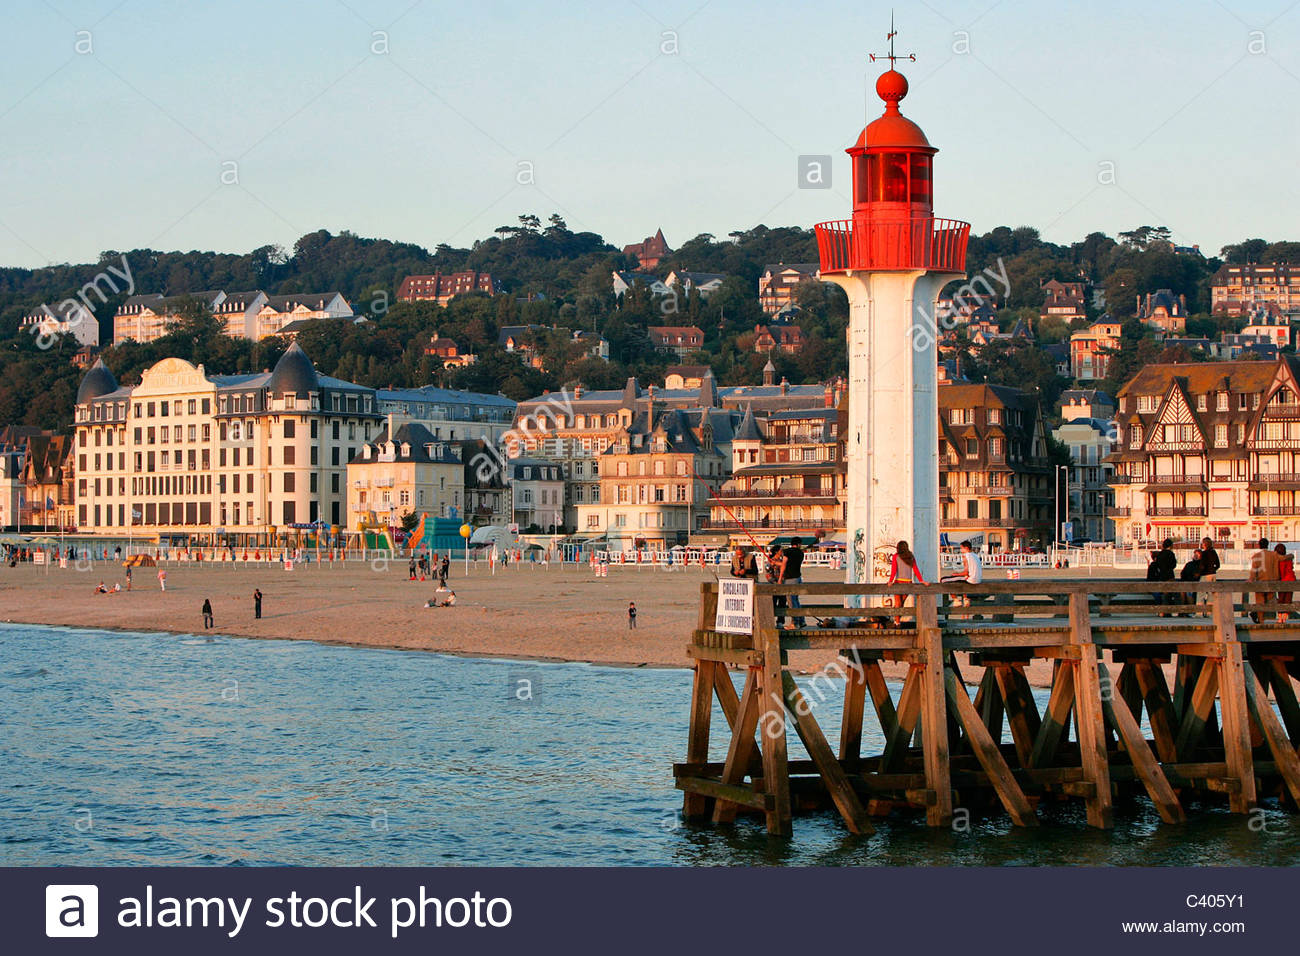 France, Normandy, Trouville sur Mer, lighthouse Stock Photo